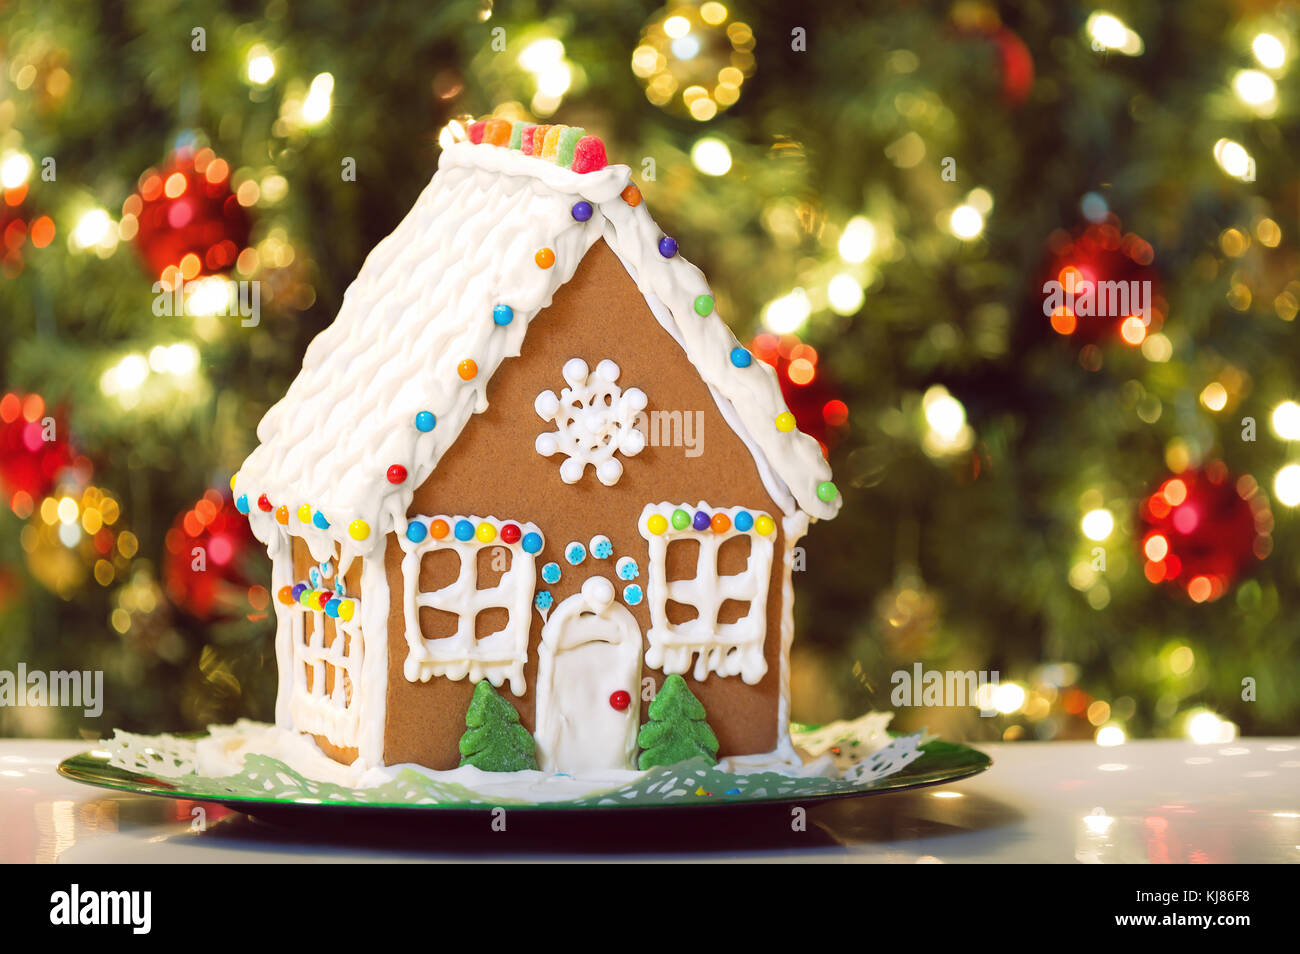 Christmas Gingerbread House Background.Homemade Christmas Gingerbread House Displayed On A Table